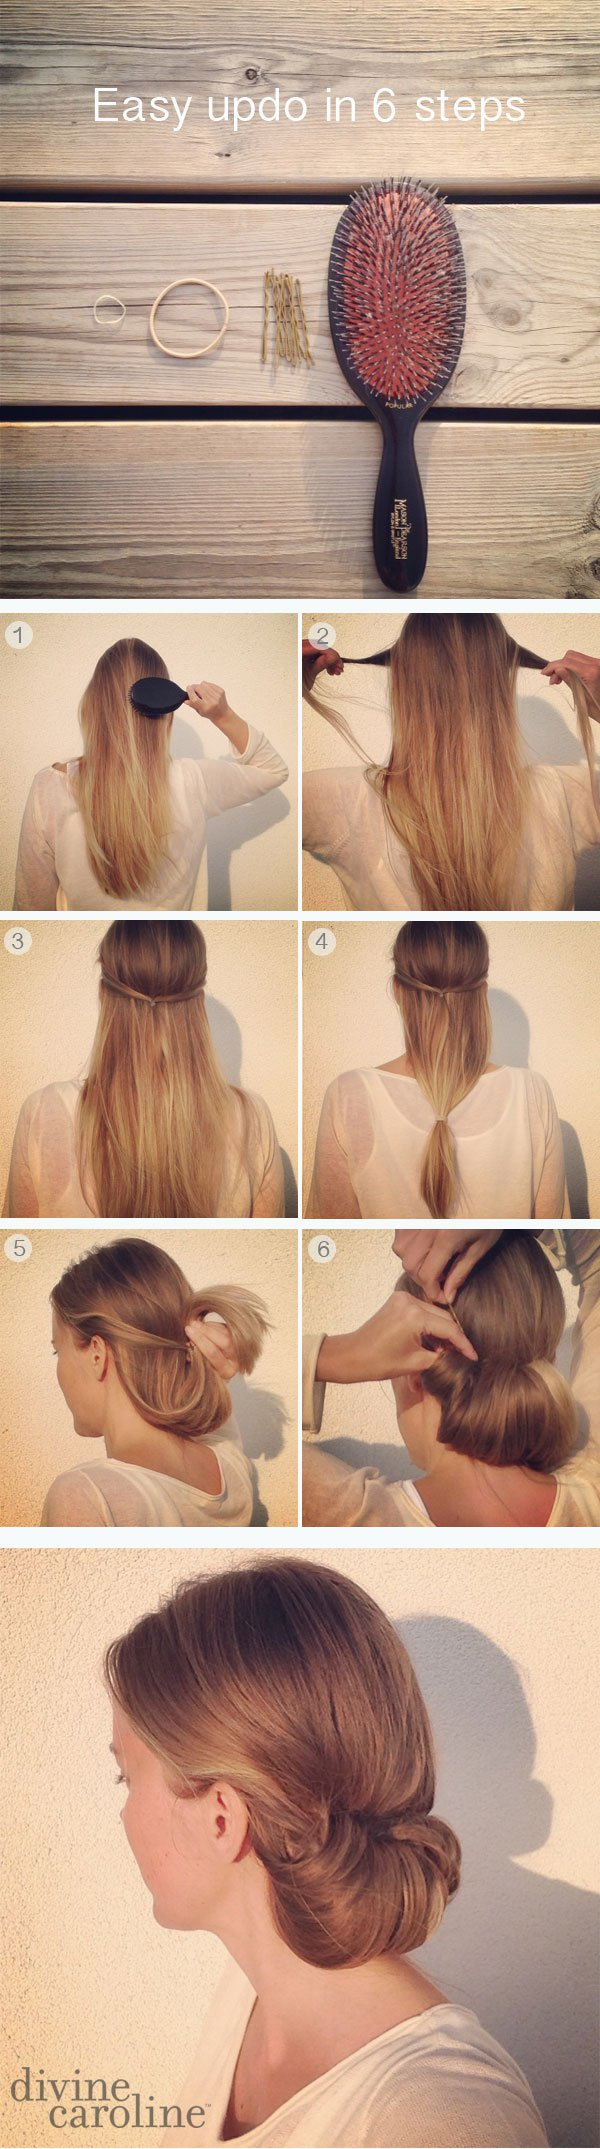 Tucked Updo Hairstyle Tutorial